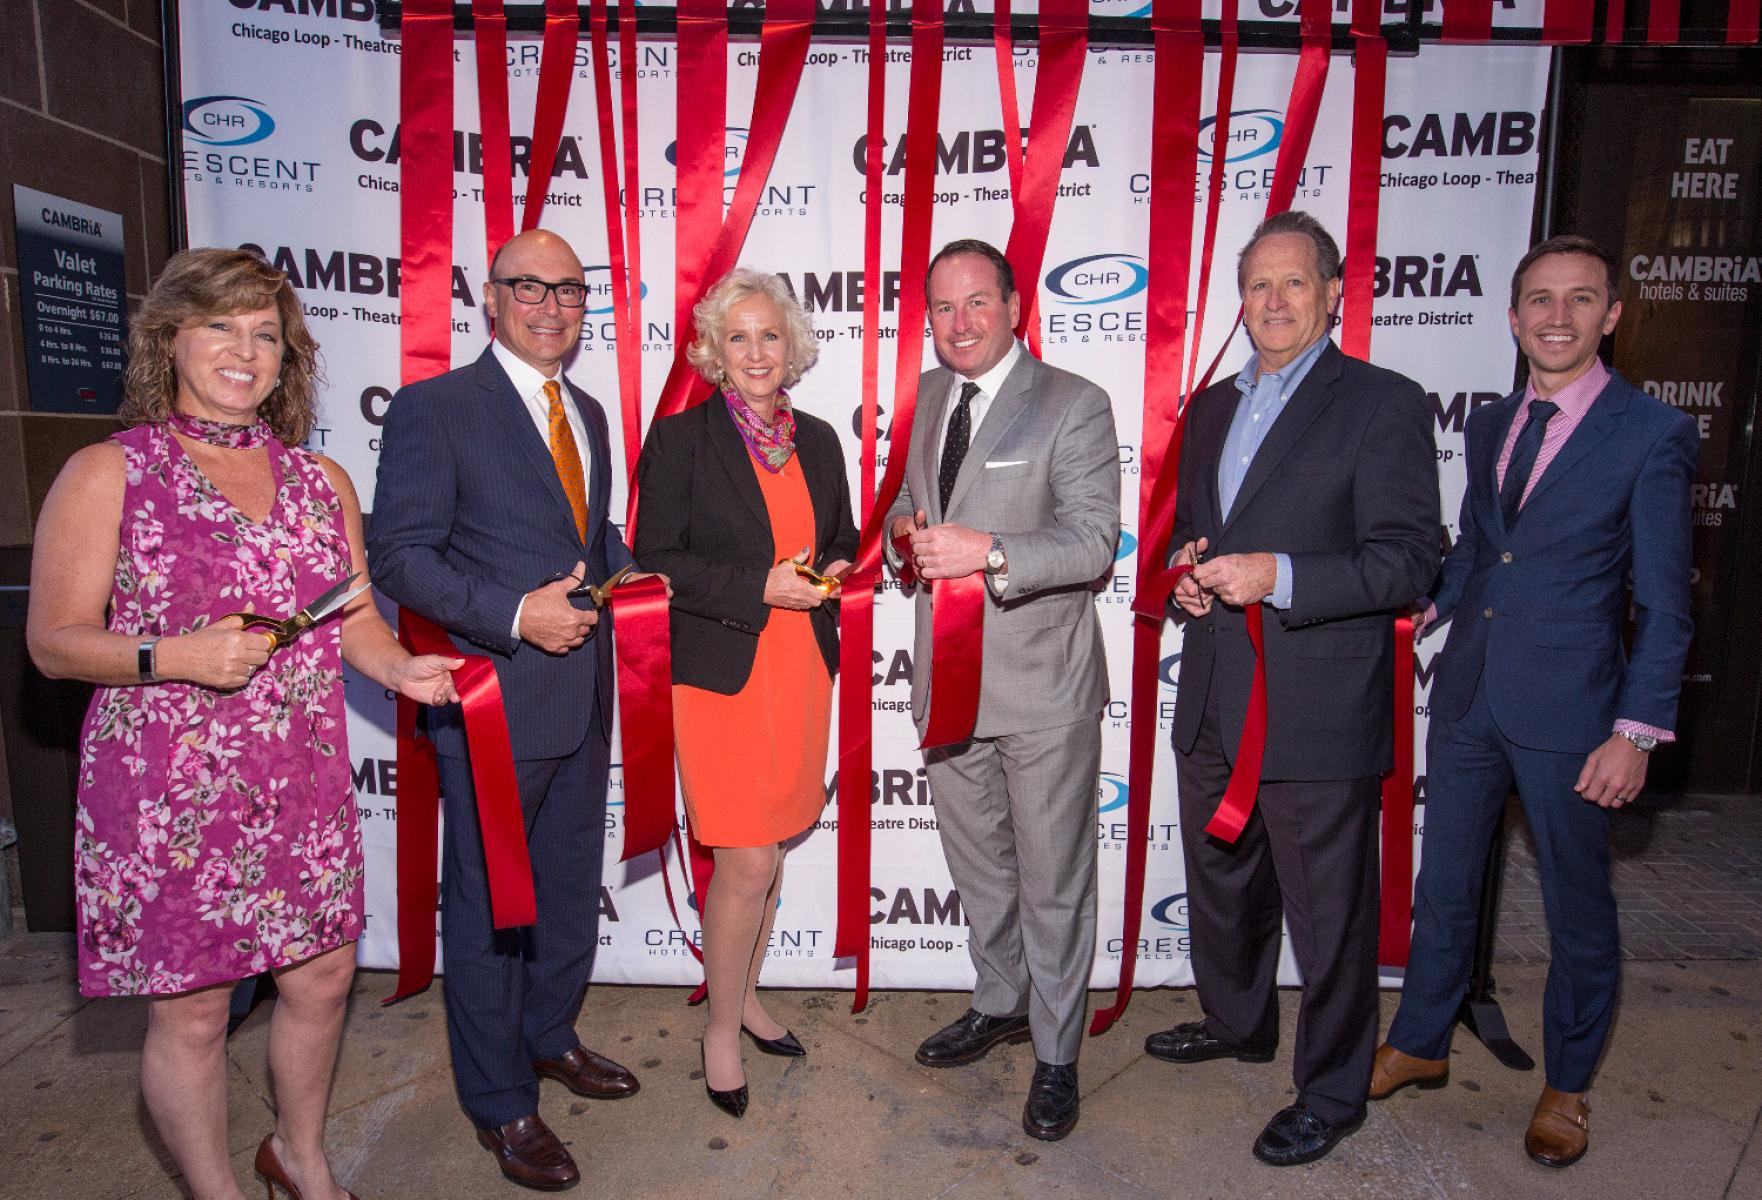 Cambria Hotels Celebrates Chicago Loop – Theatre District Grand Opening